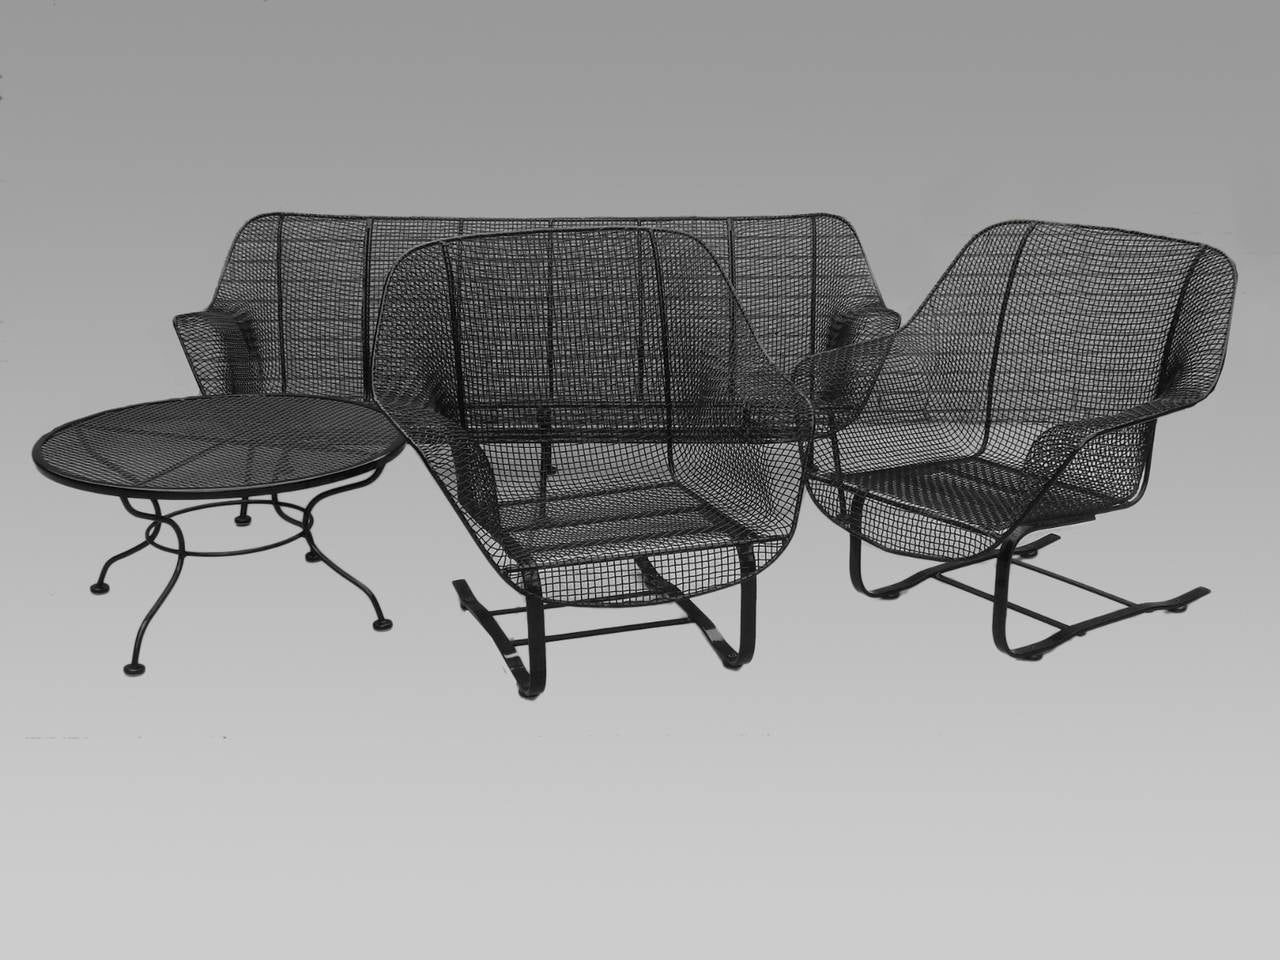 Four-Piece Suite of Woodard Wrought Iron Outdoor Garden Furniture 2